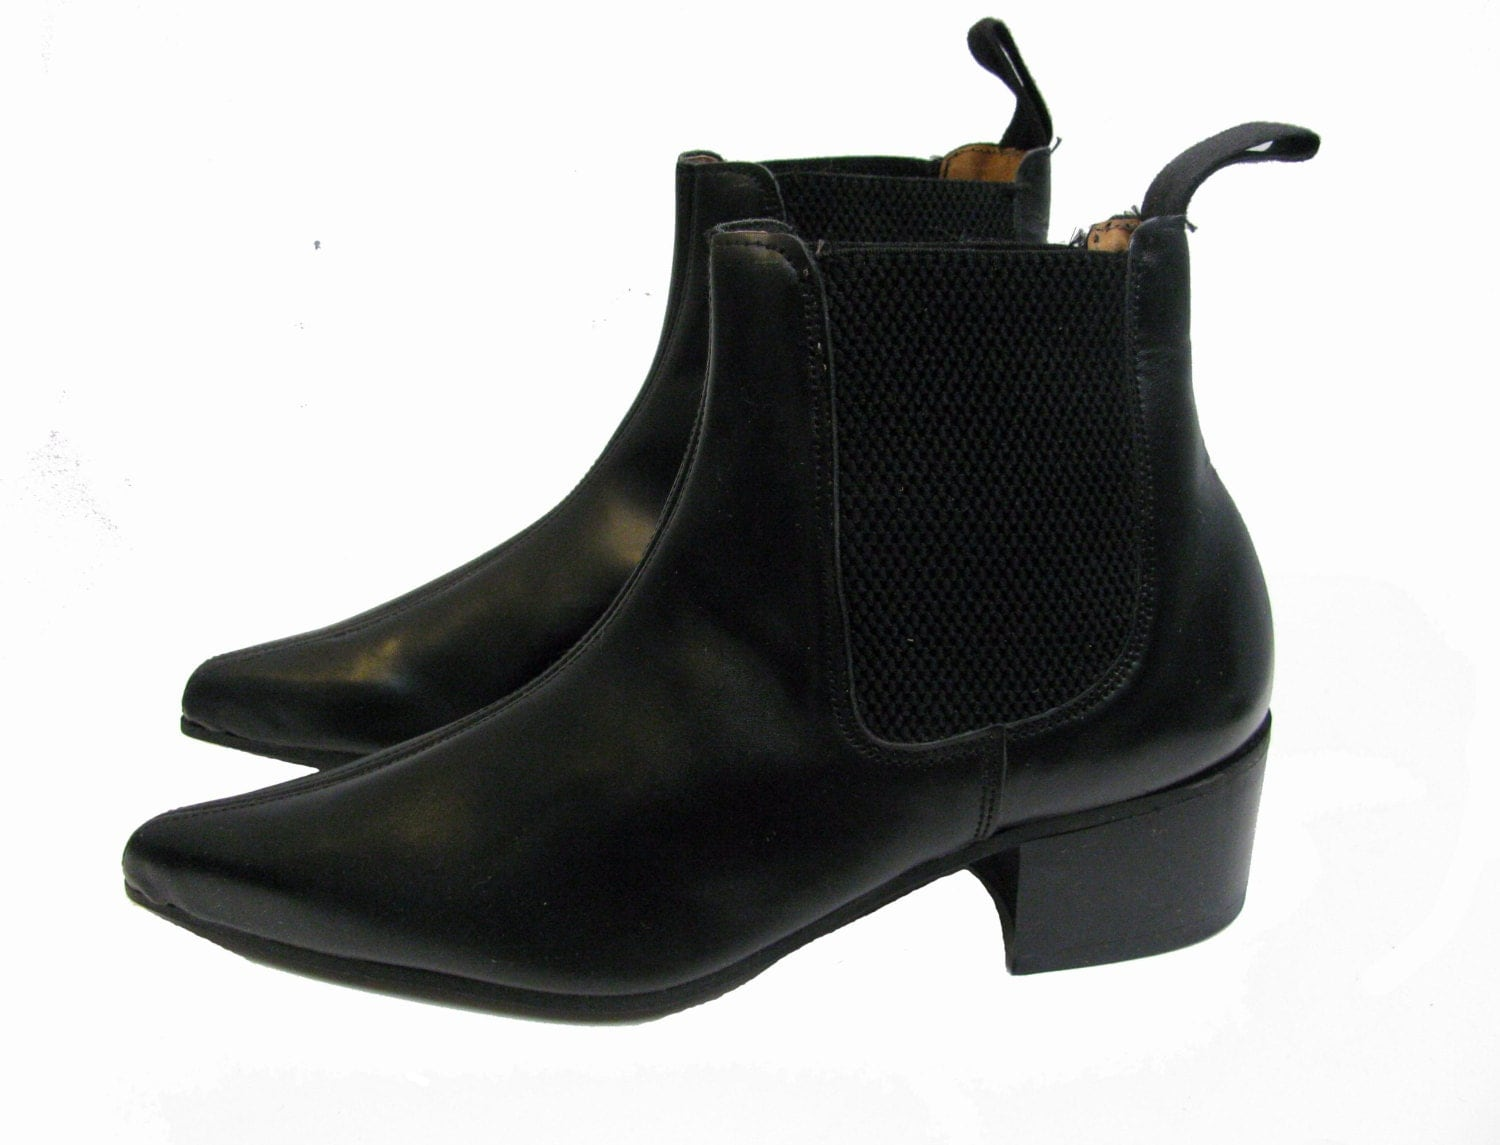 English Chelsea Boots Tredair Uk Black Leather Pointed Toe